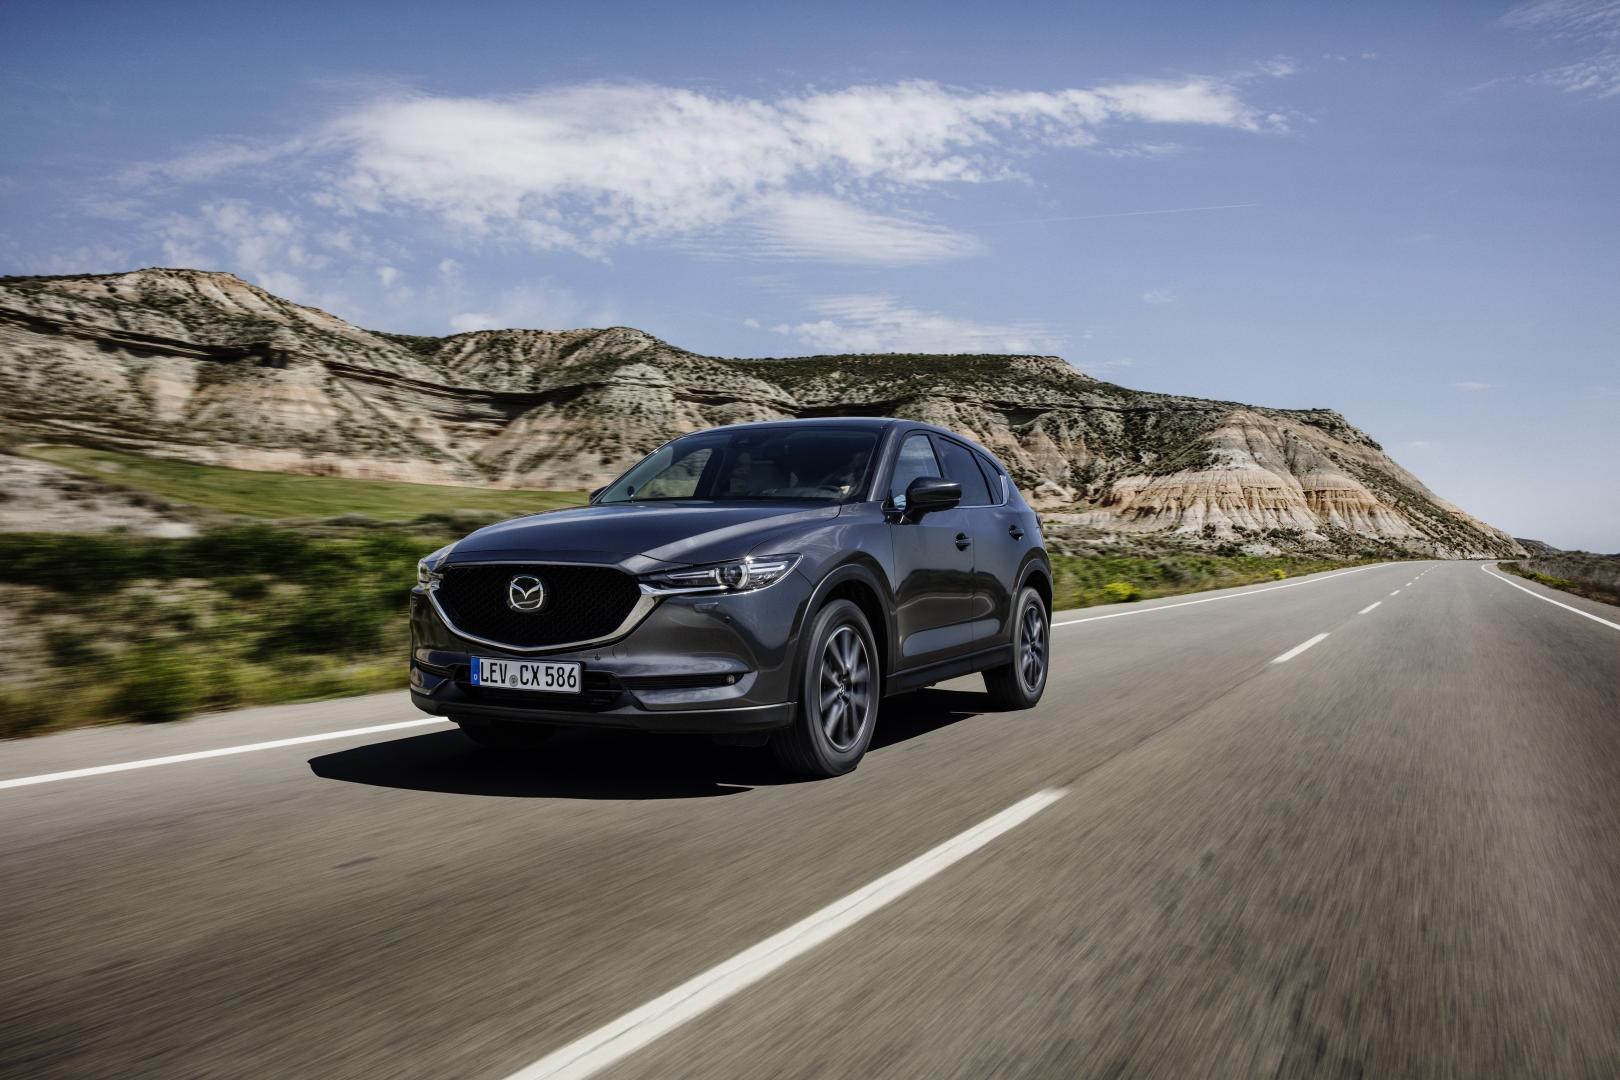 mazda cx 5 2 0 skyactiv g 160 gt m autotest en specificaties. Black Bedroom Furniture Sets. Home Design Ideas